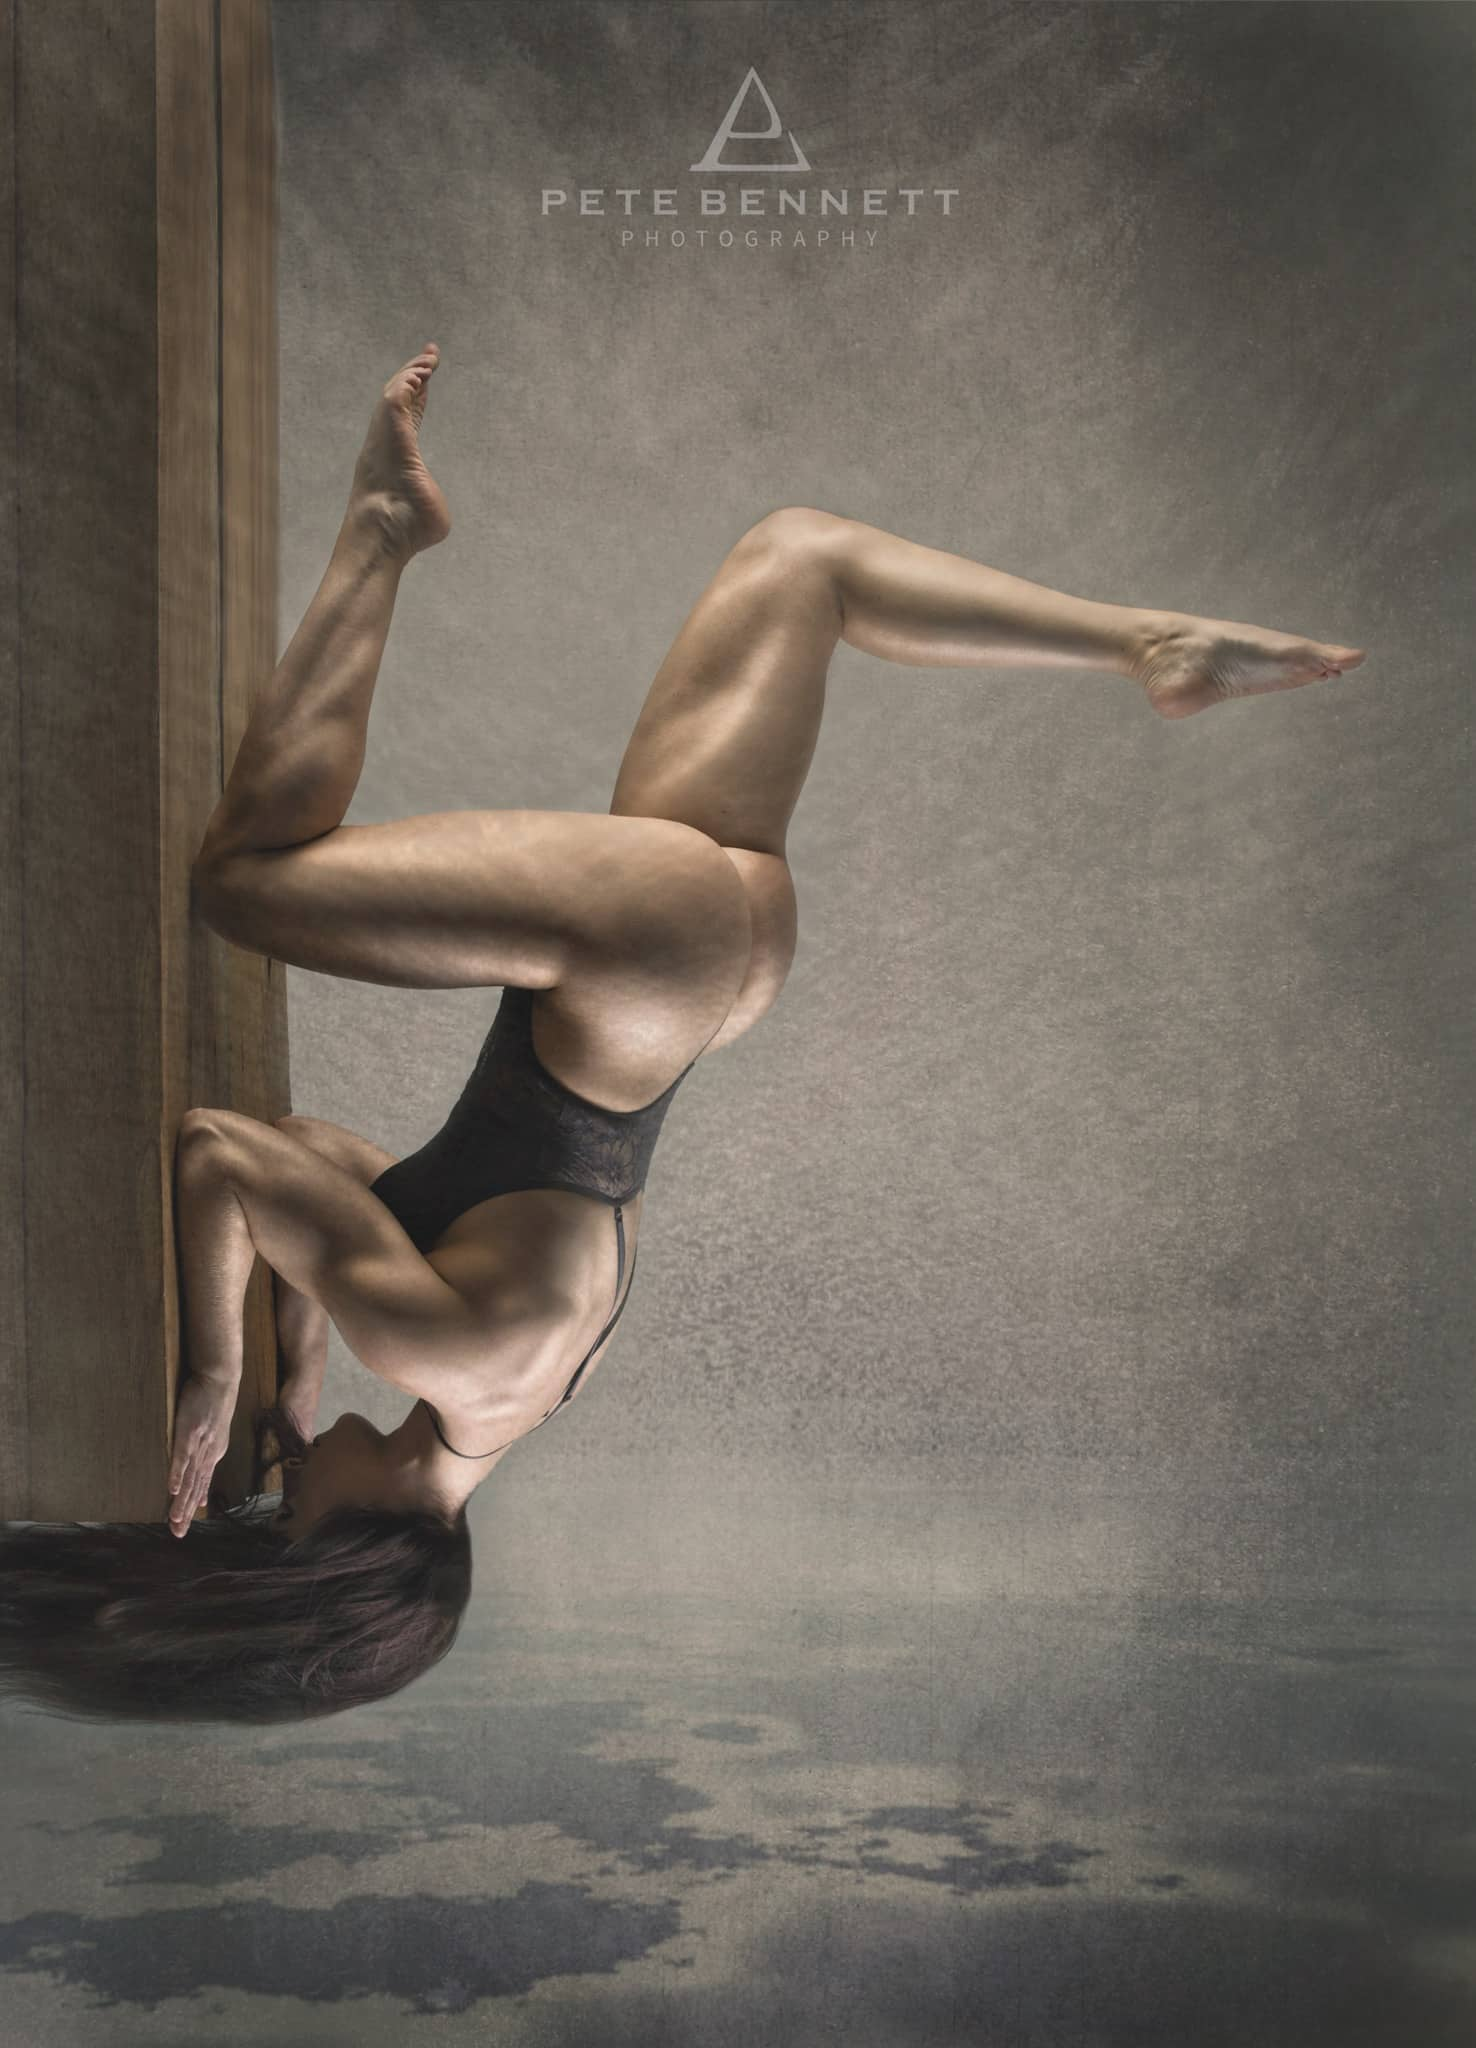 Deborah Baker surreal physique photography